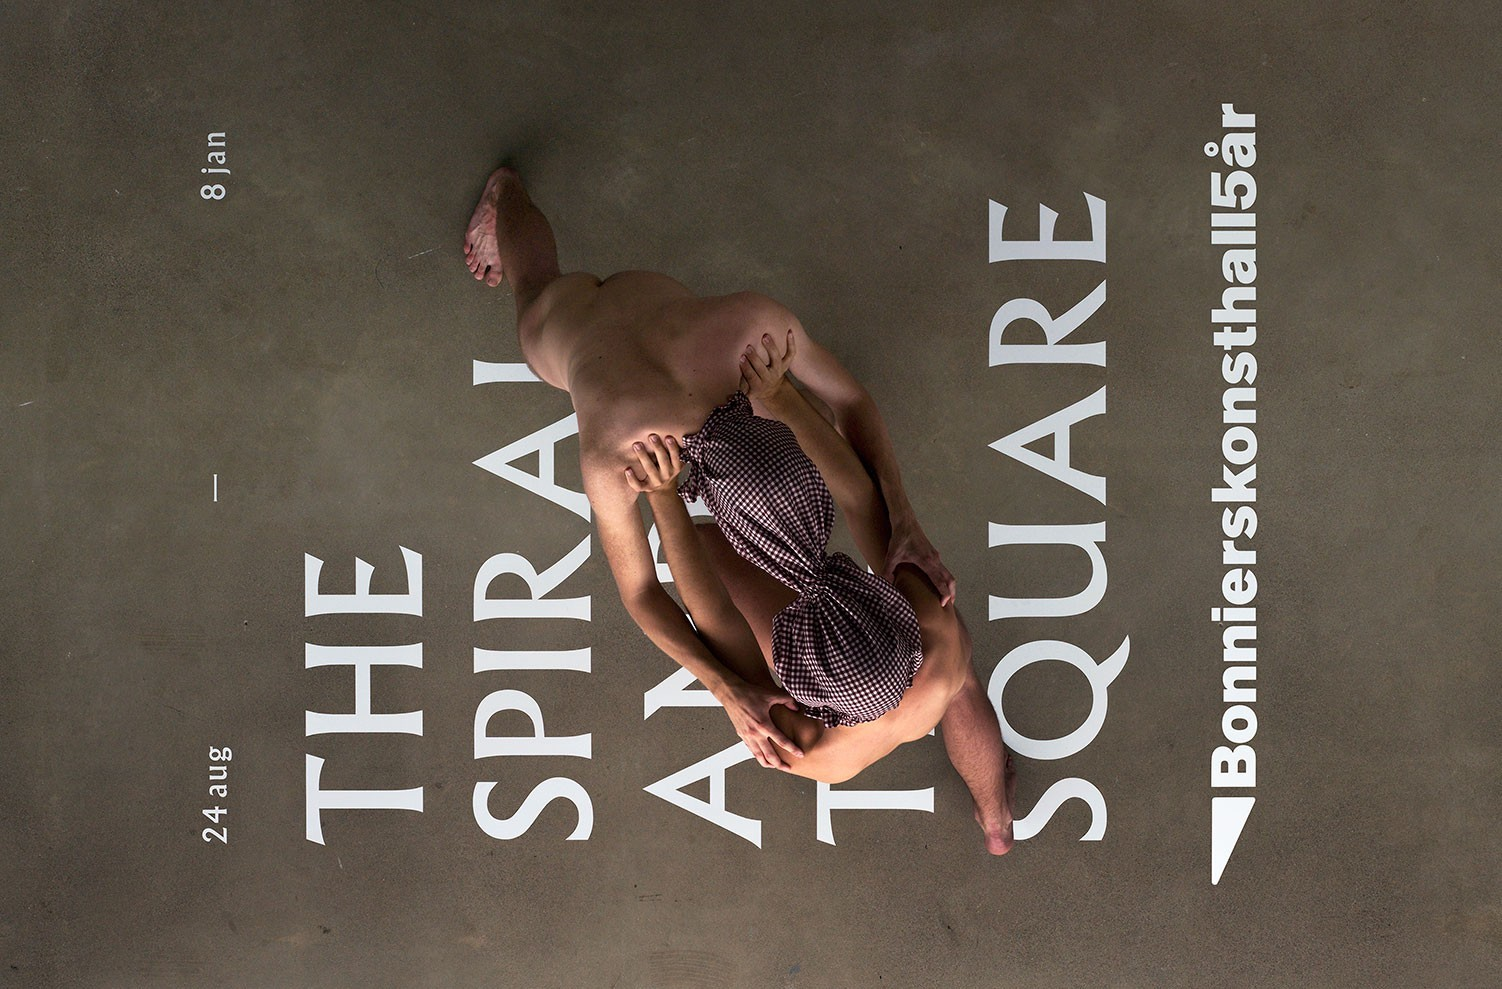 ritator_bonniers_konsthall_the_spiral_and_the_square_campaign_6